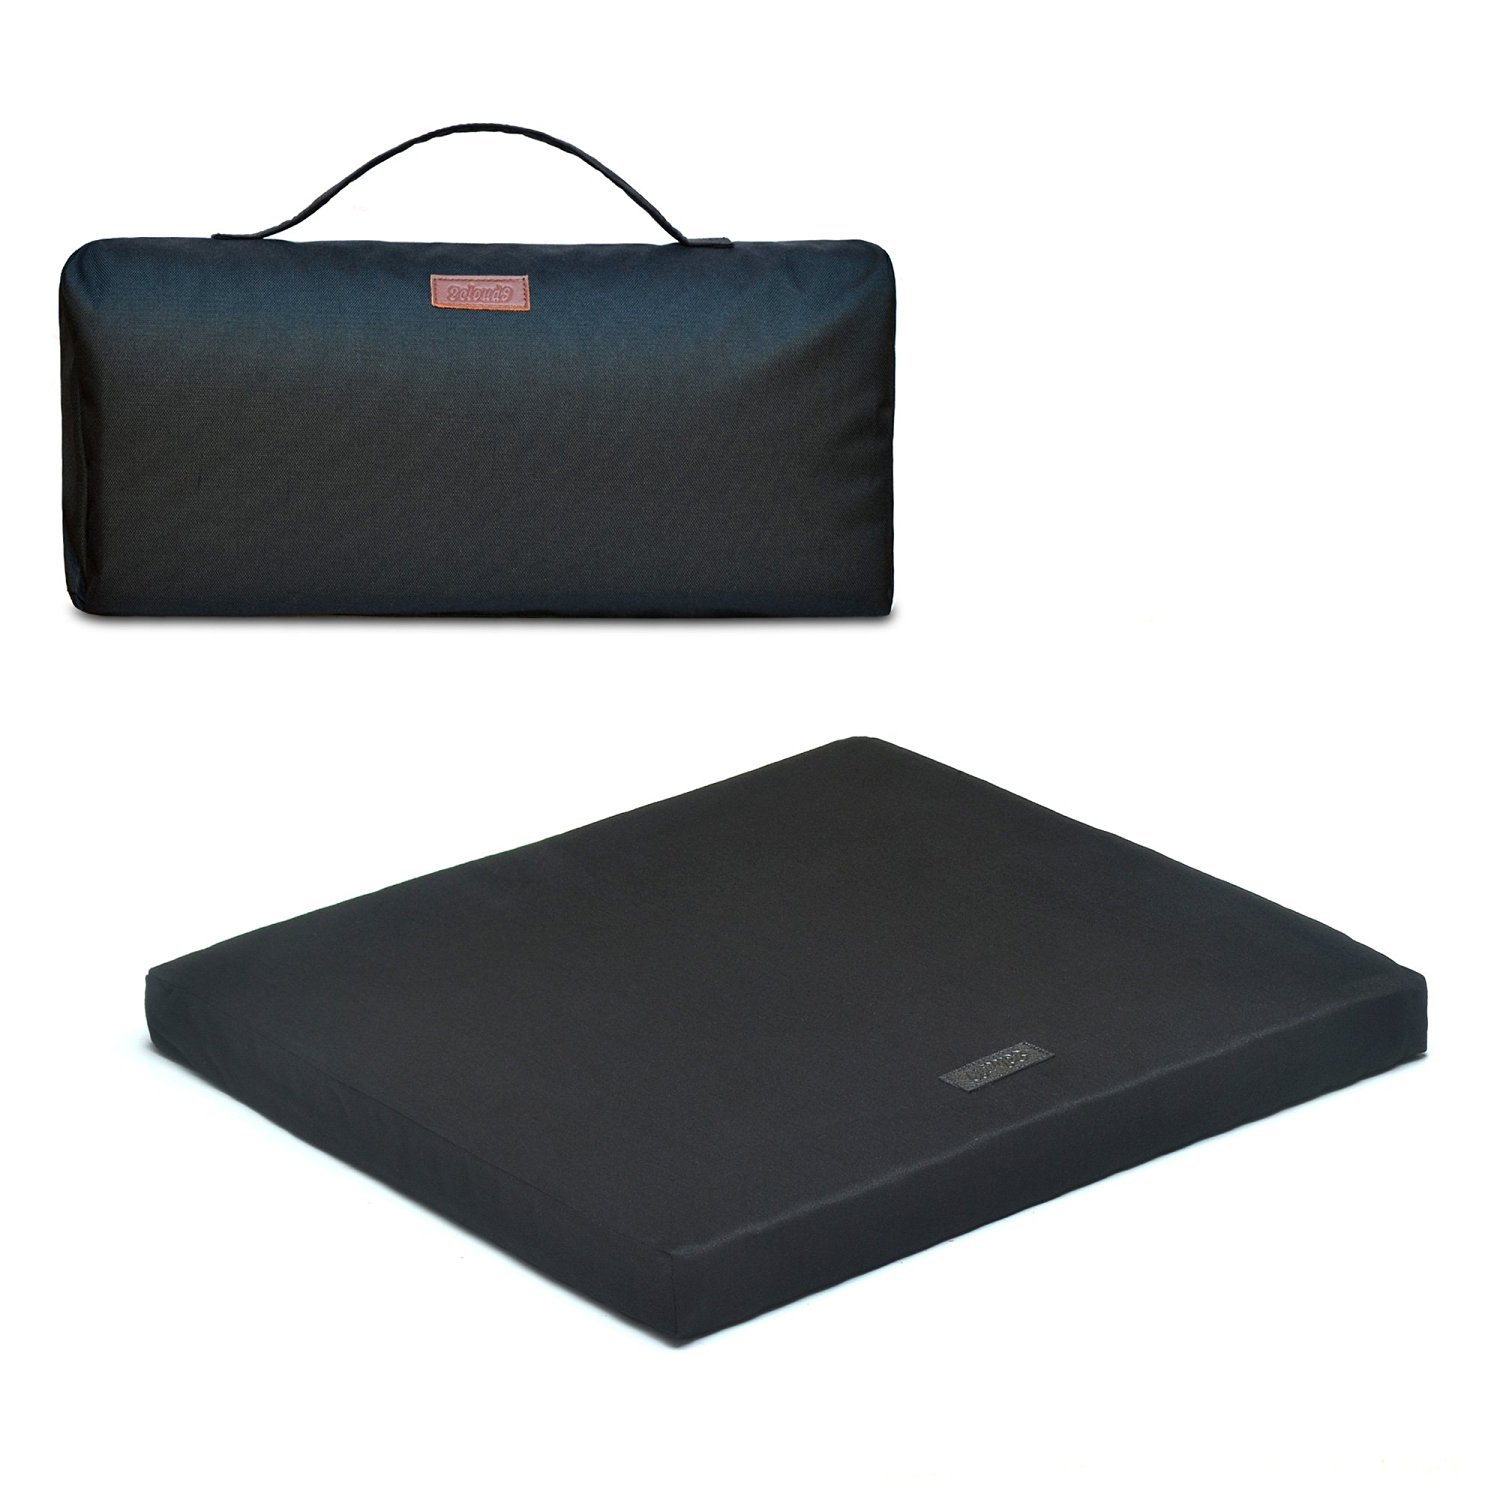 The Upgrade Seat, 100% Natural Latex Foam Seat Cushion for Home, Airplanes, Office, Cars, Wheelchairs and Stadiums with 100% Cotton Cover (Black)